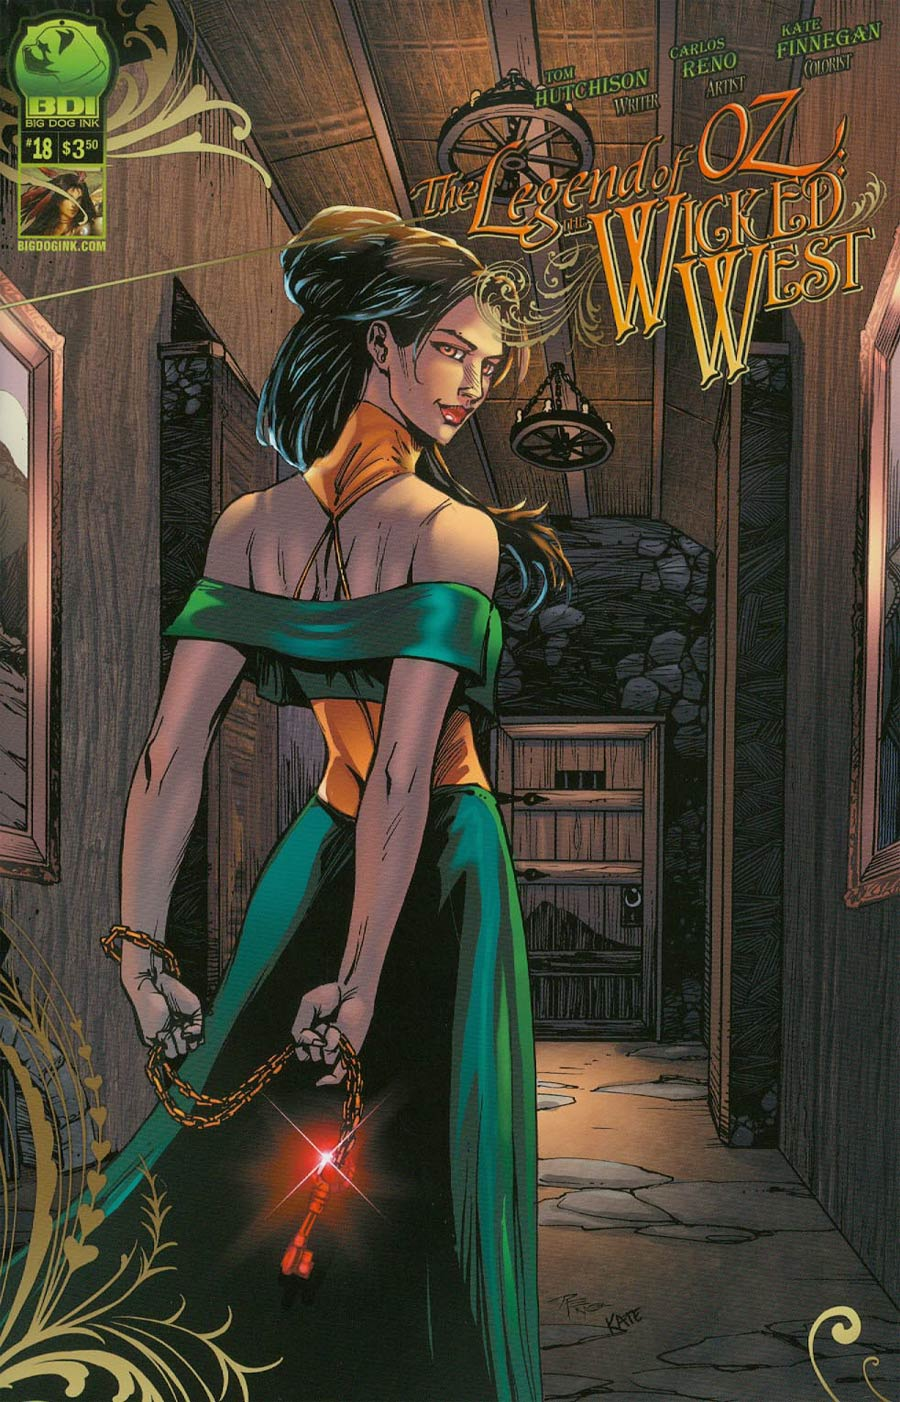 Legend Of Oz The Wicked West Vol 2 #18 Cover A Alisson Borges